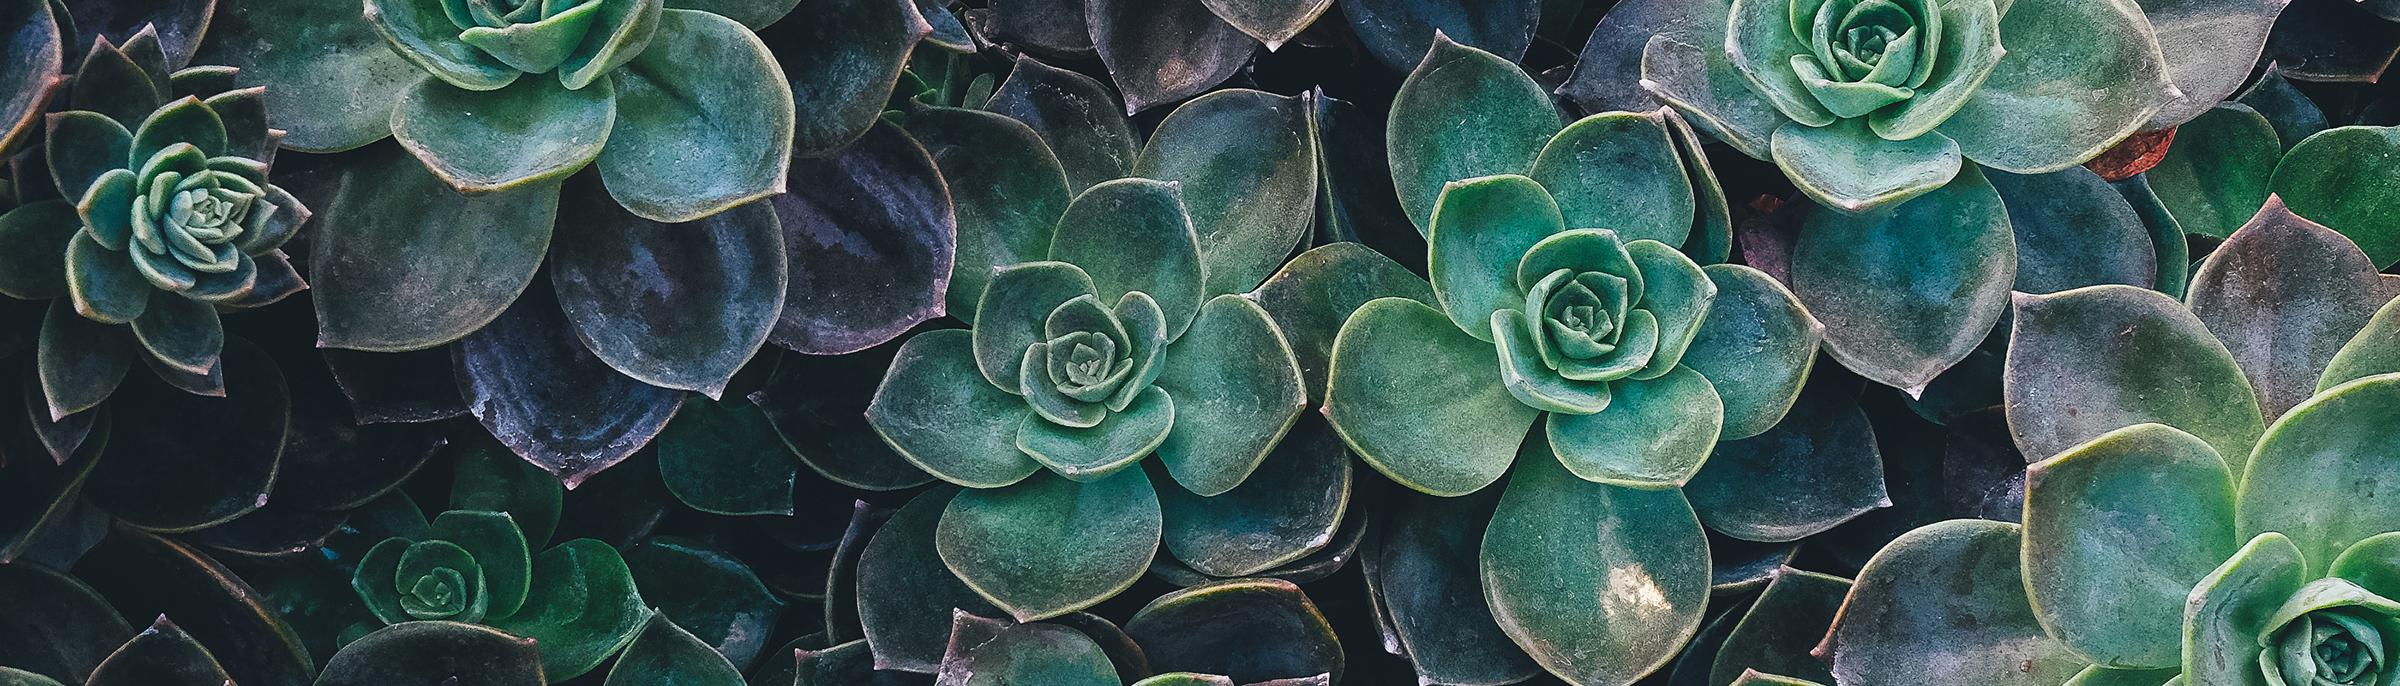 succulents-header